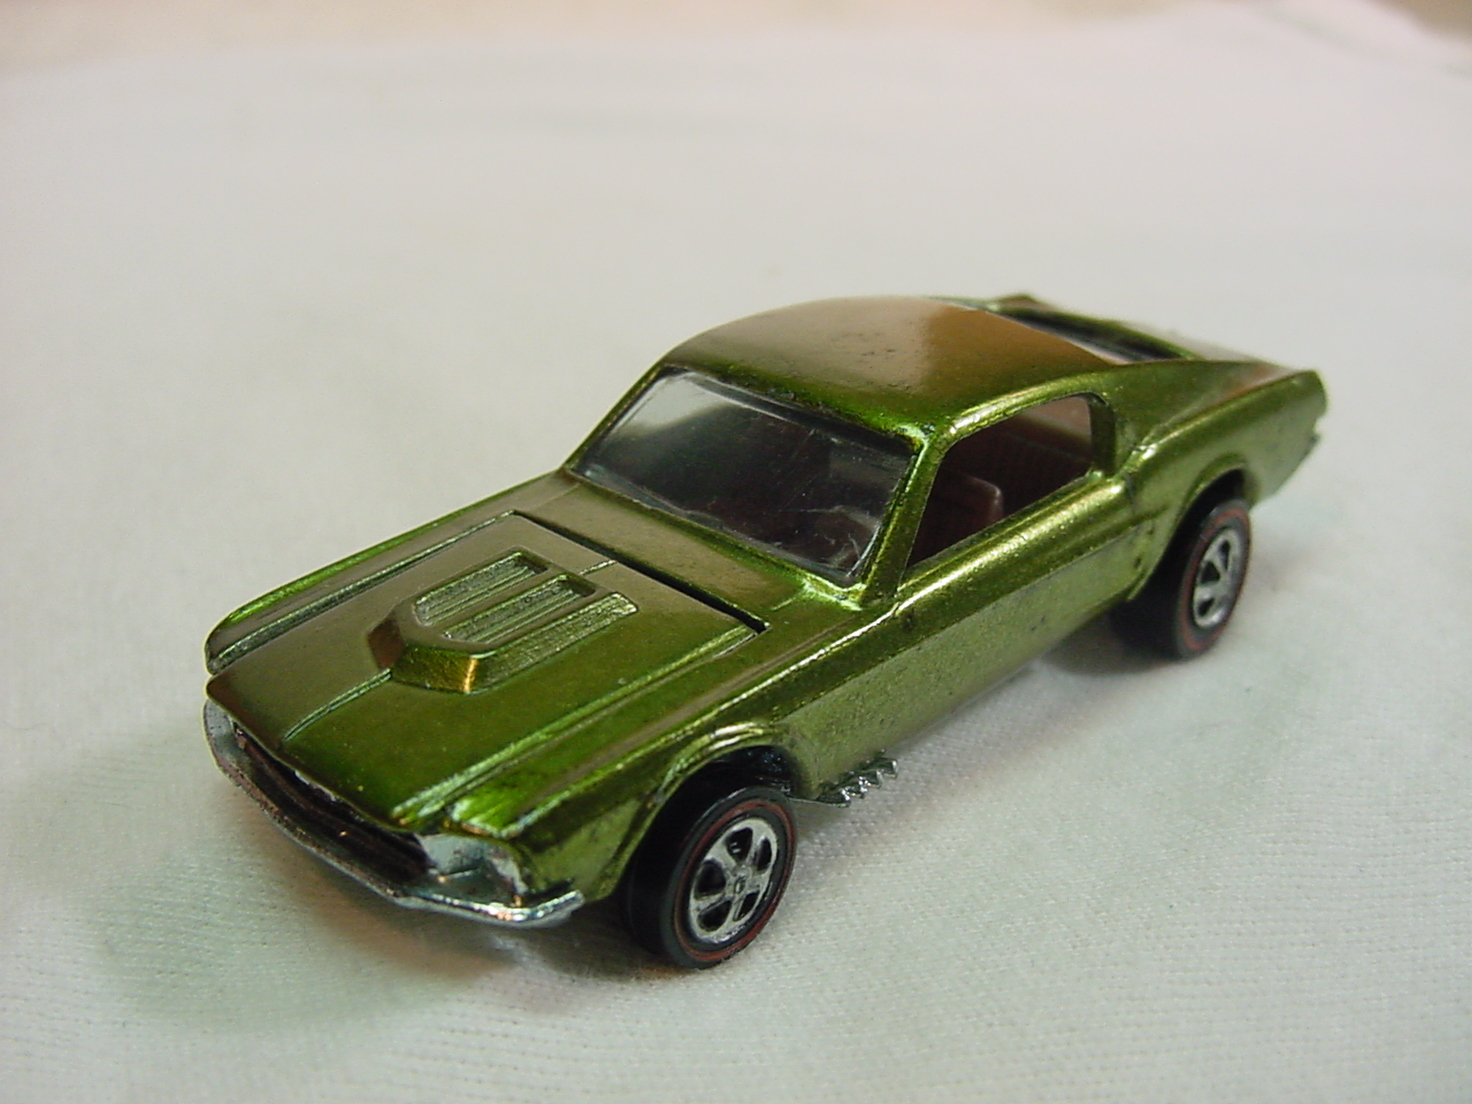 Categorymustang Cars Hot Wheels Wiki Fandom Powered By Wikia 1970 Ford Mustang Gt Convertible